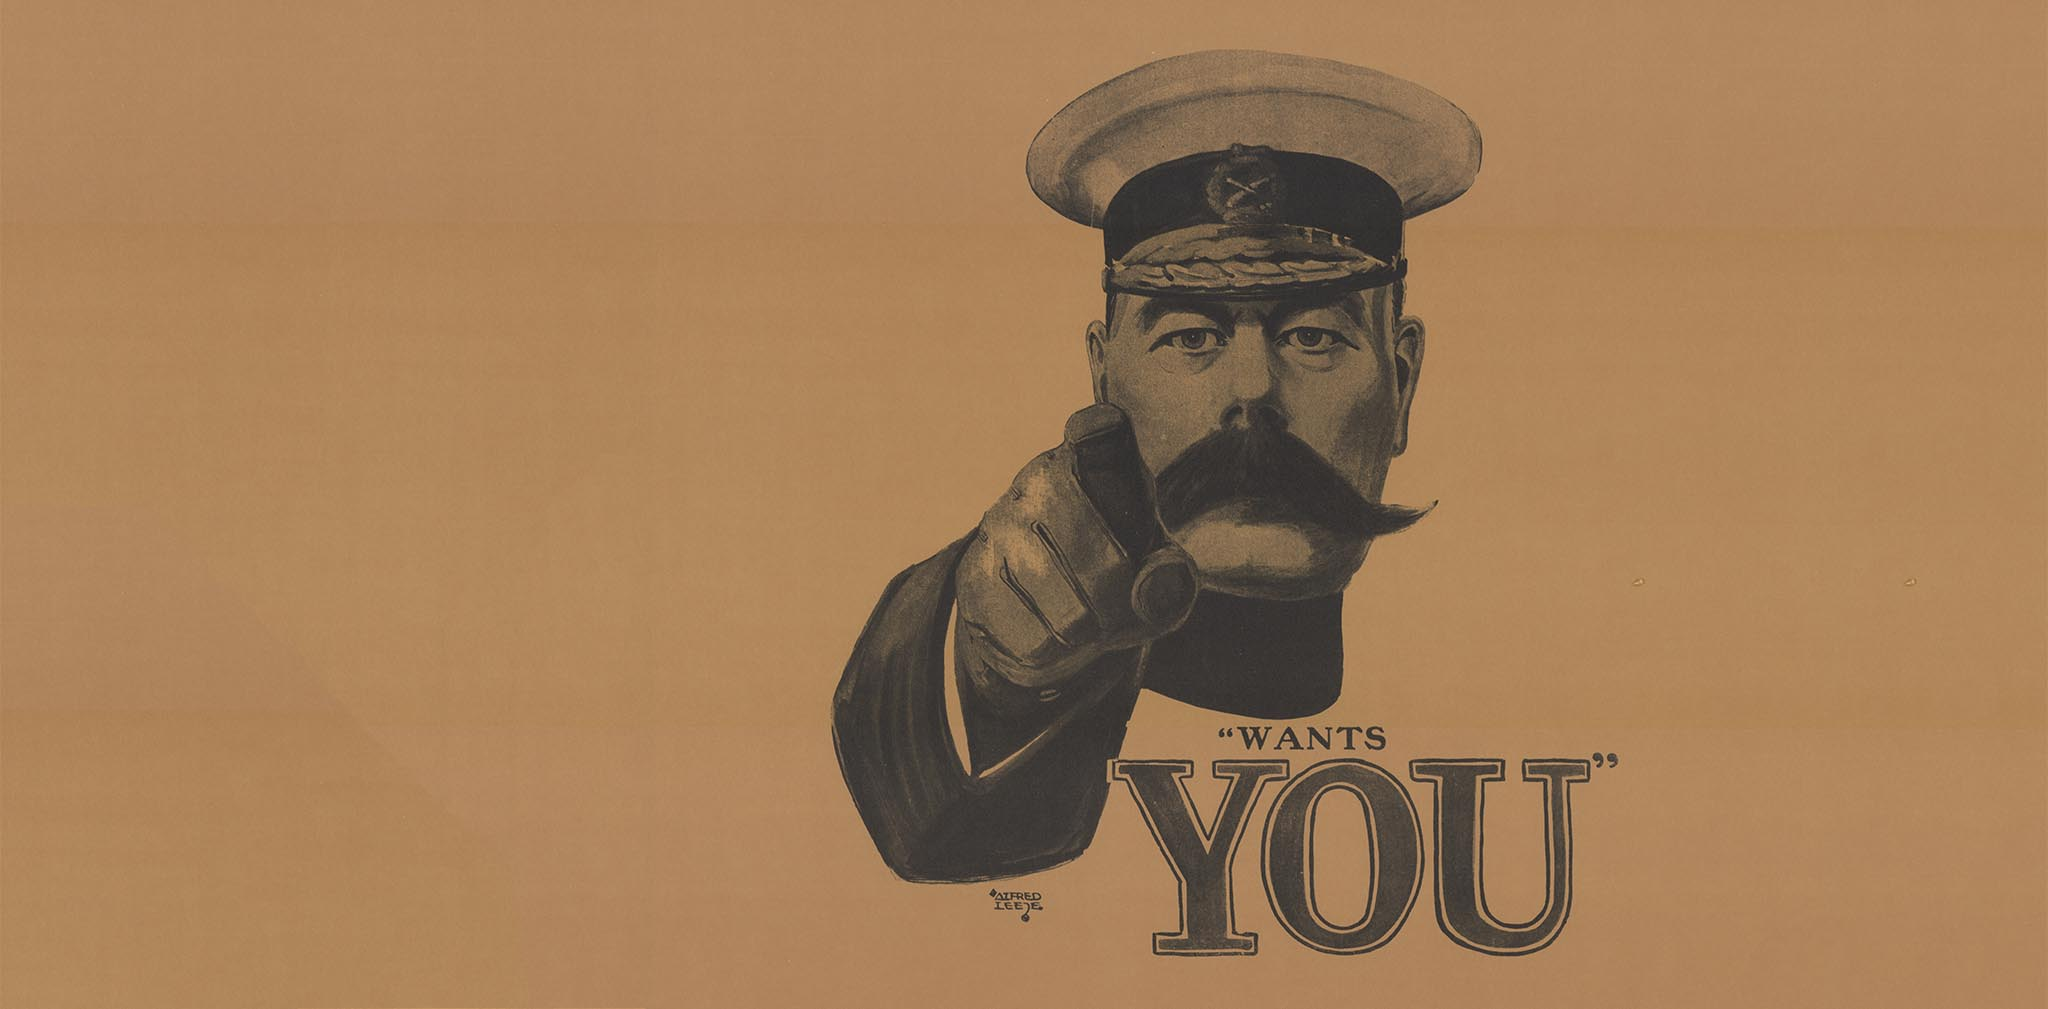 Lord Kitchener - wants you to mind your metadata